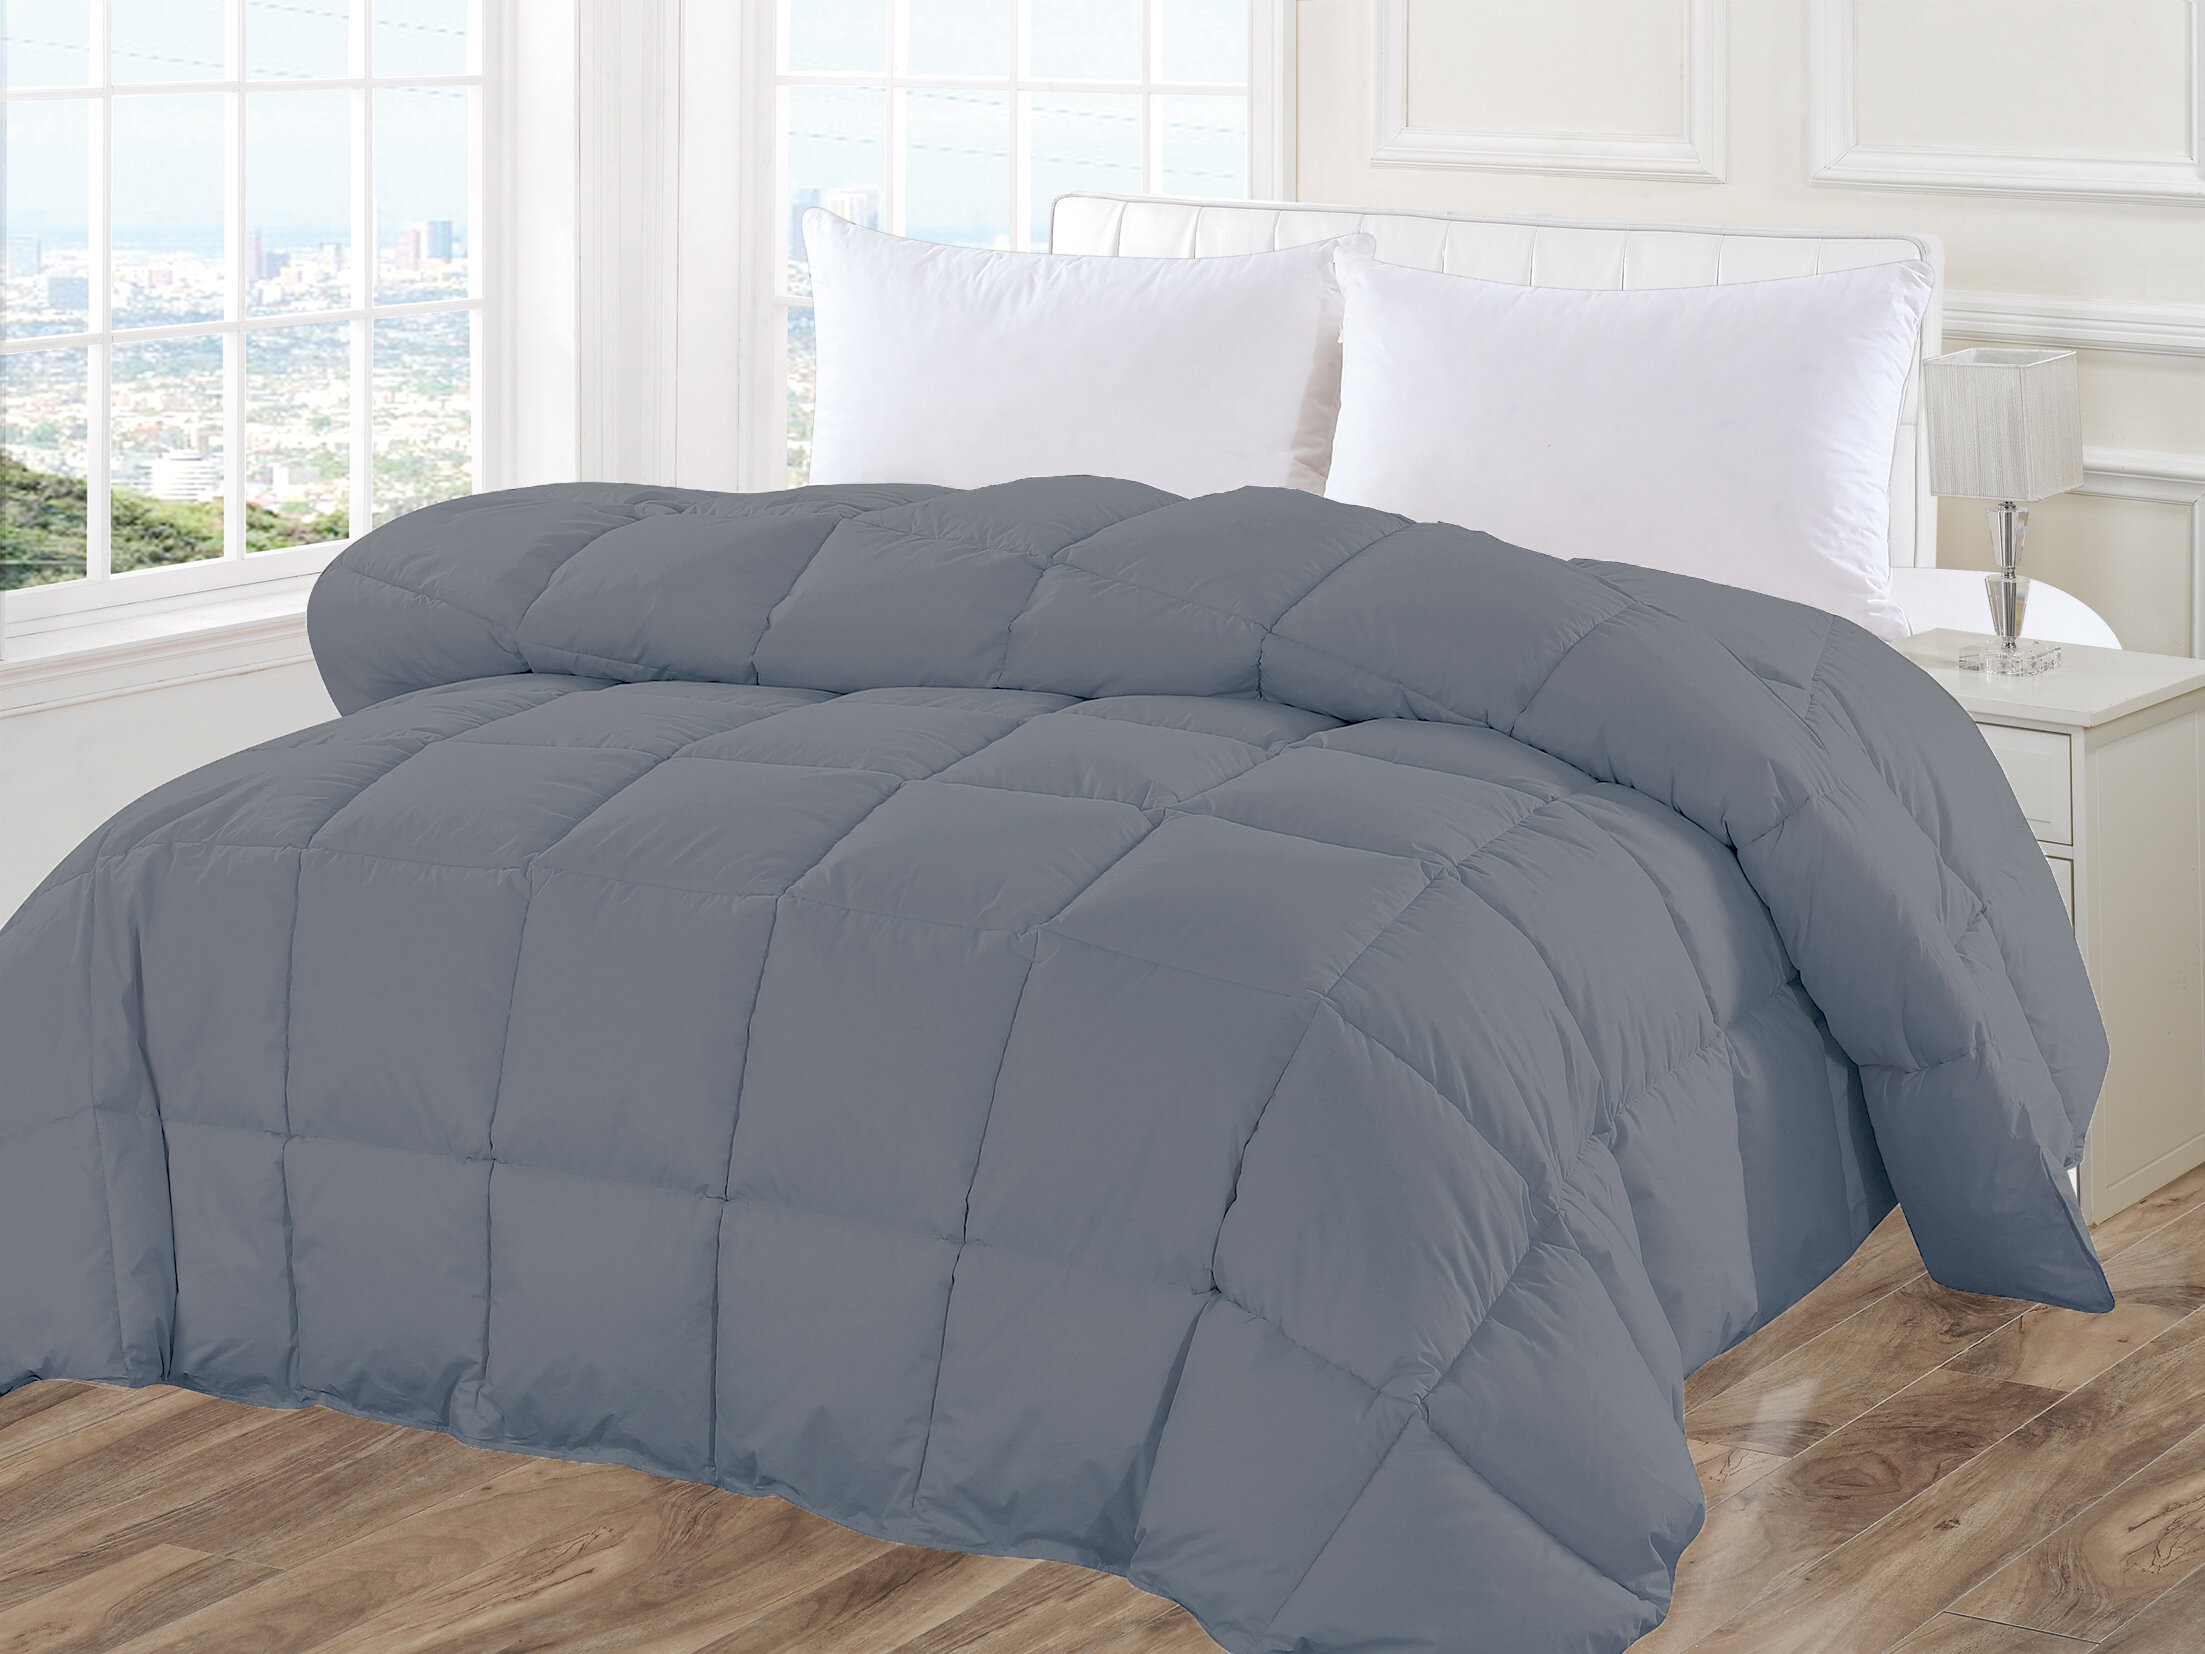 700 Fill Power All Season Down Comforter Reviews